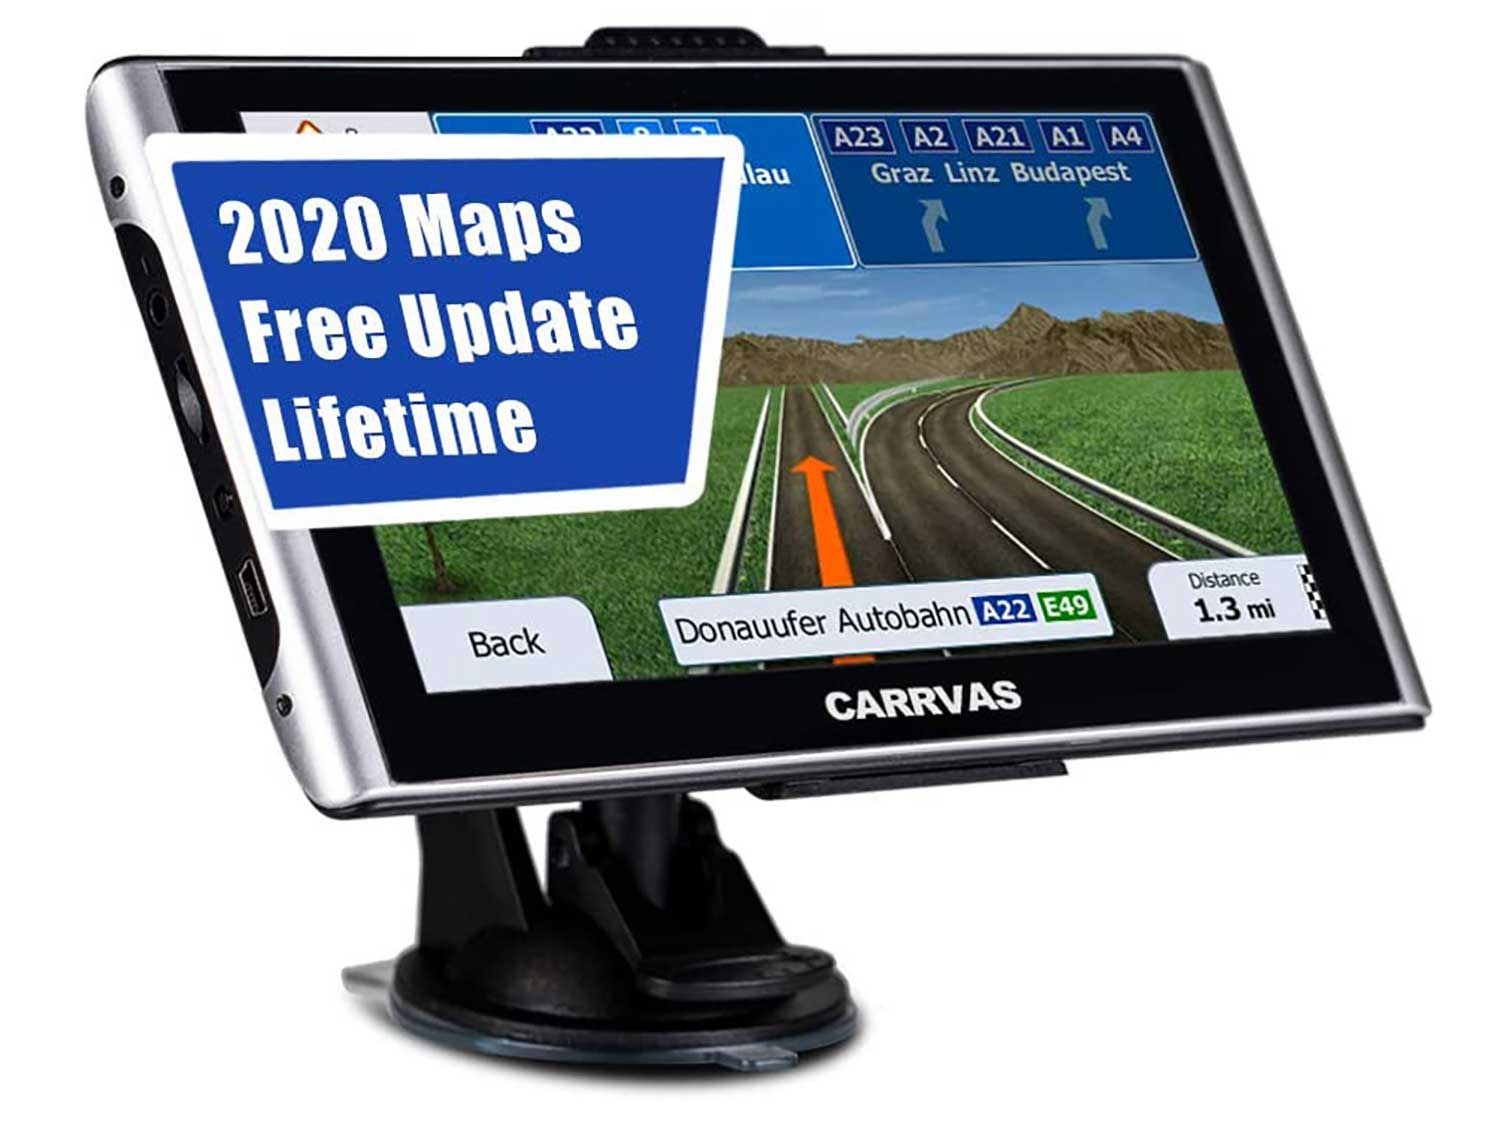 CARRVAS GPS Navigation for Car,Truck GPS,7 Inch Voice Turn Direction Guidance,Support Speed and Red Light Warning Pre-Installed US, Mexico,Canada + South America Maps